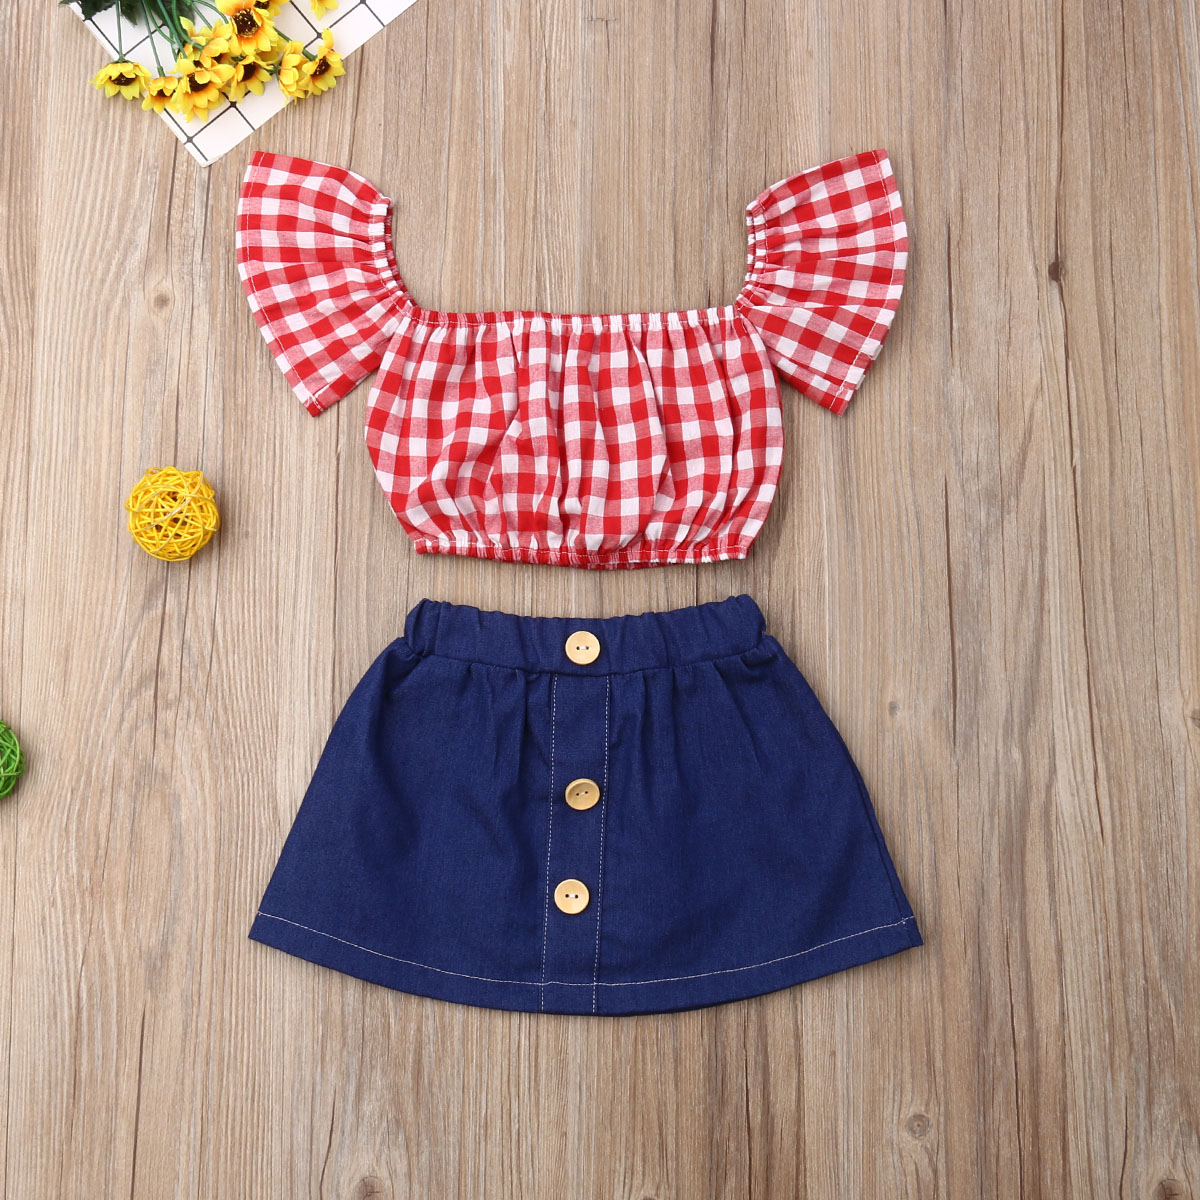 Pudcoco Toddler Baby Girl Clothes Off Shoulder Fly Sleeve Plaid Crop Tops Denim Mini Skirt 2Pcs Outfits Clothes Summer